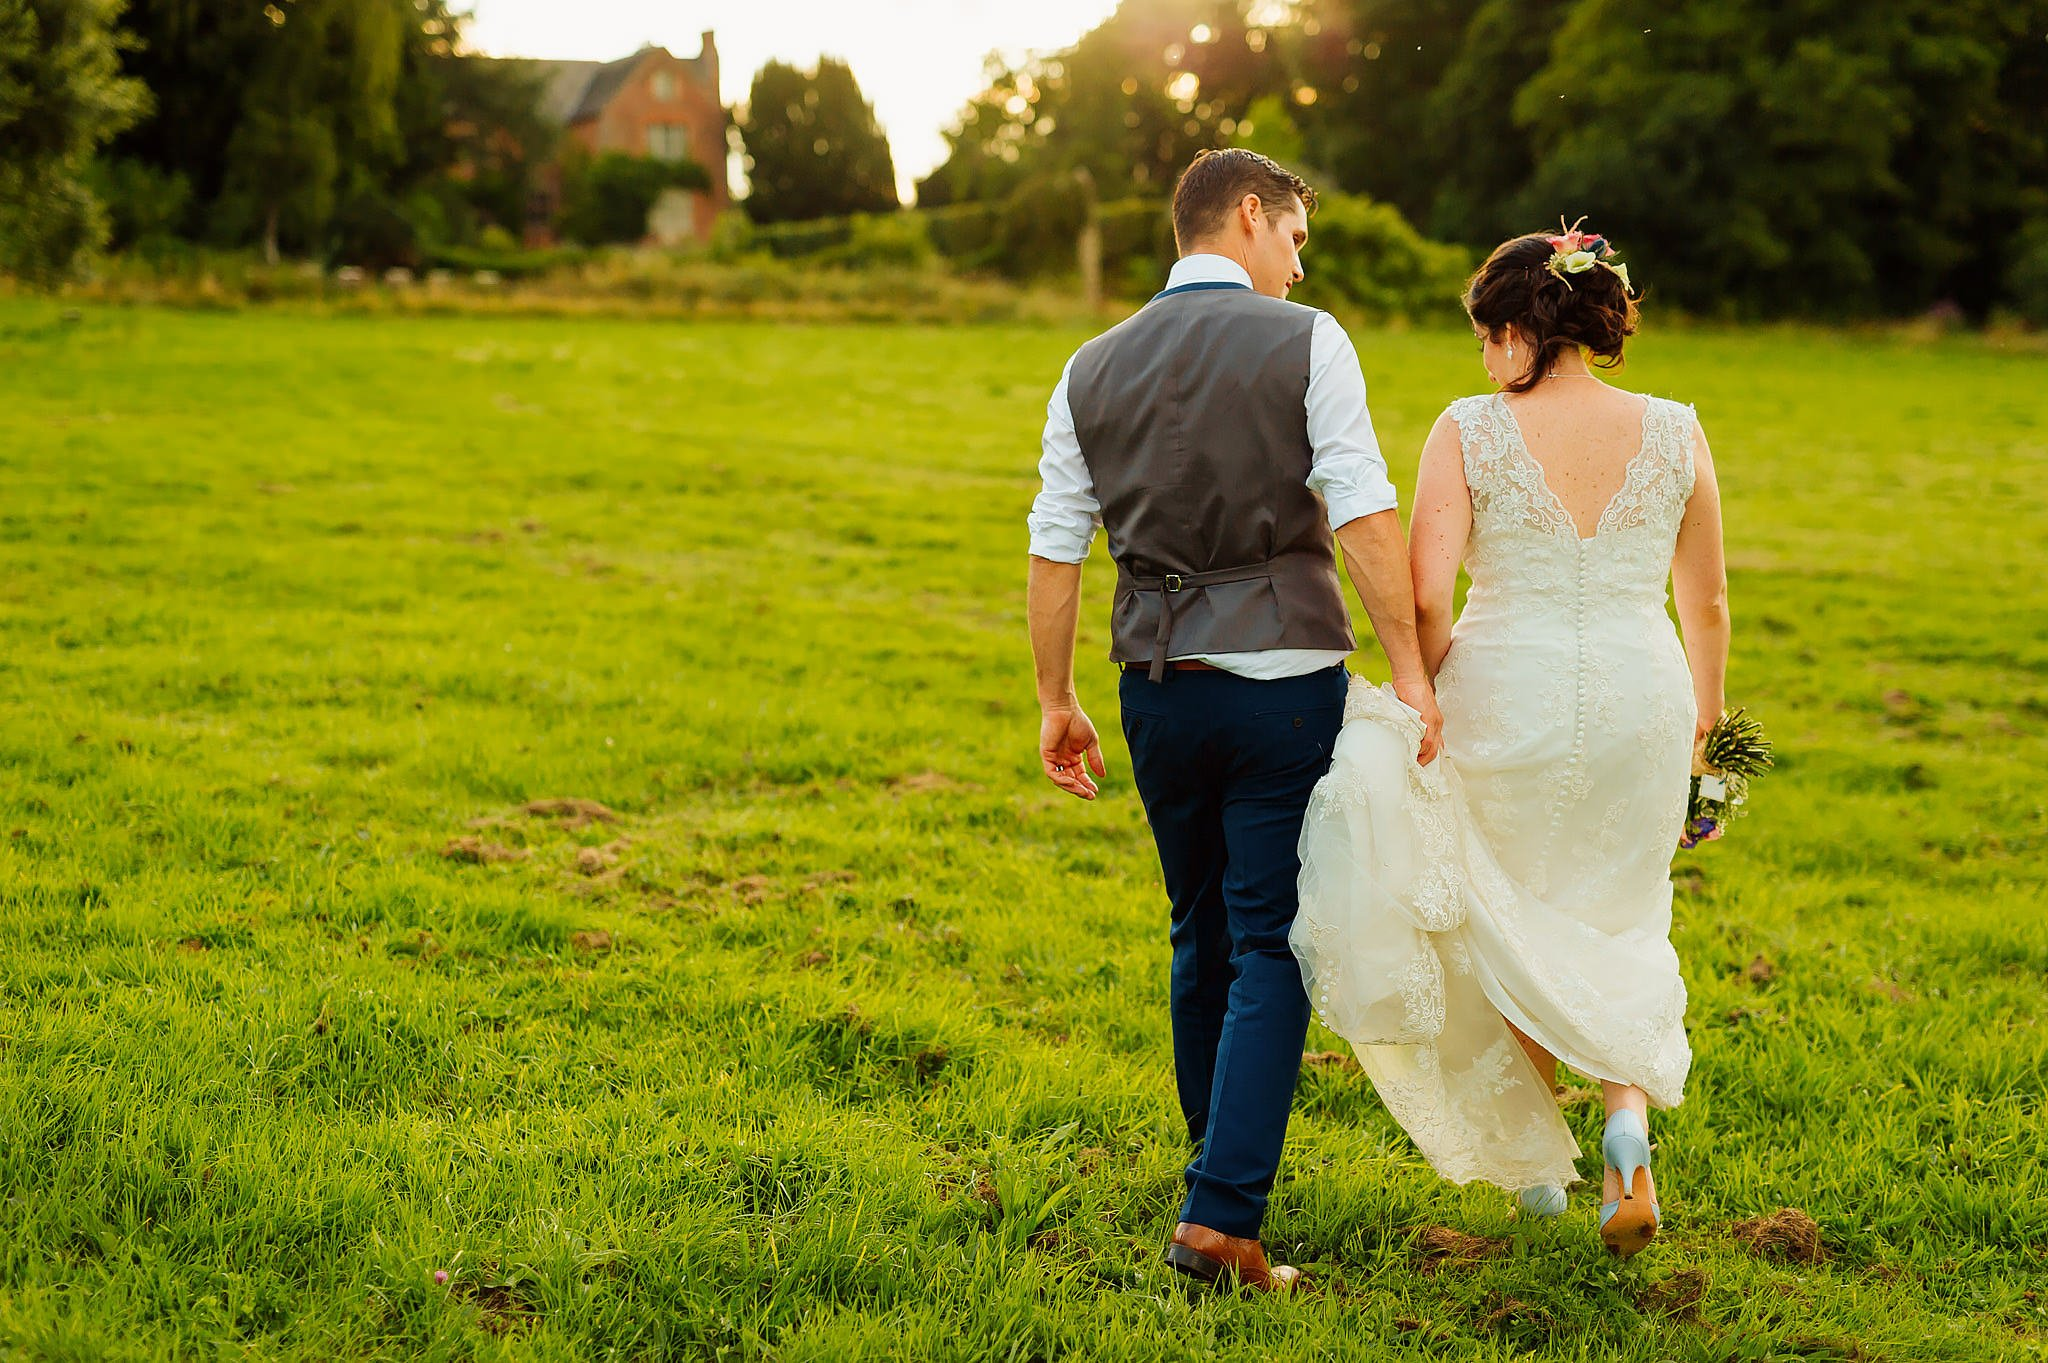 Wedding photography at Hellens Manor in Herefordshire, West Midlands | Shelley + Ian 138